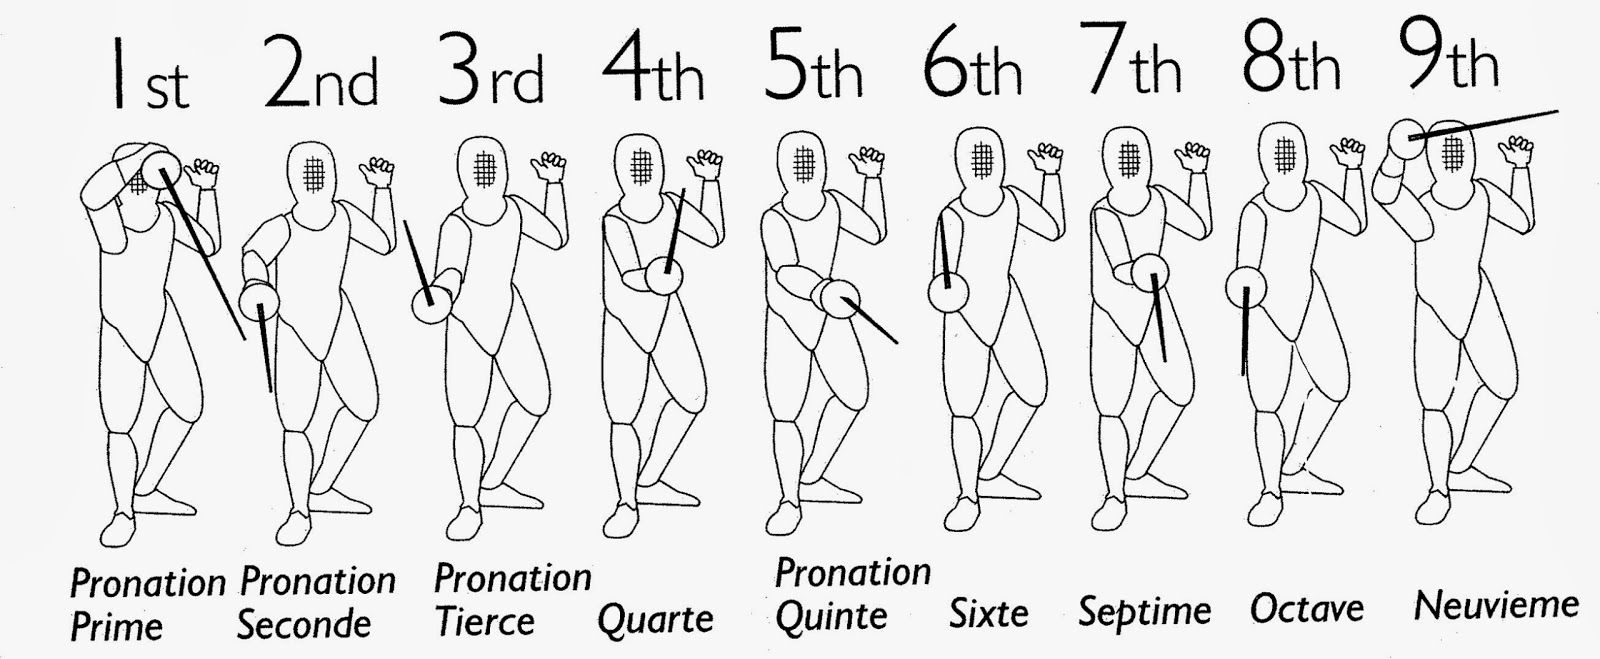 fencing sabre parry positions